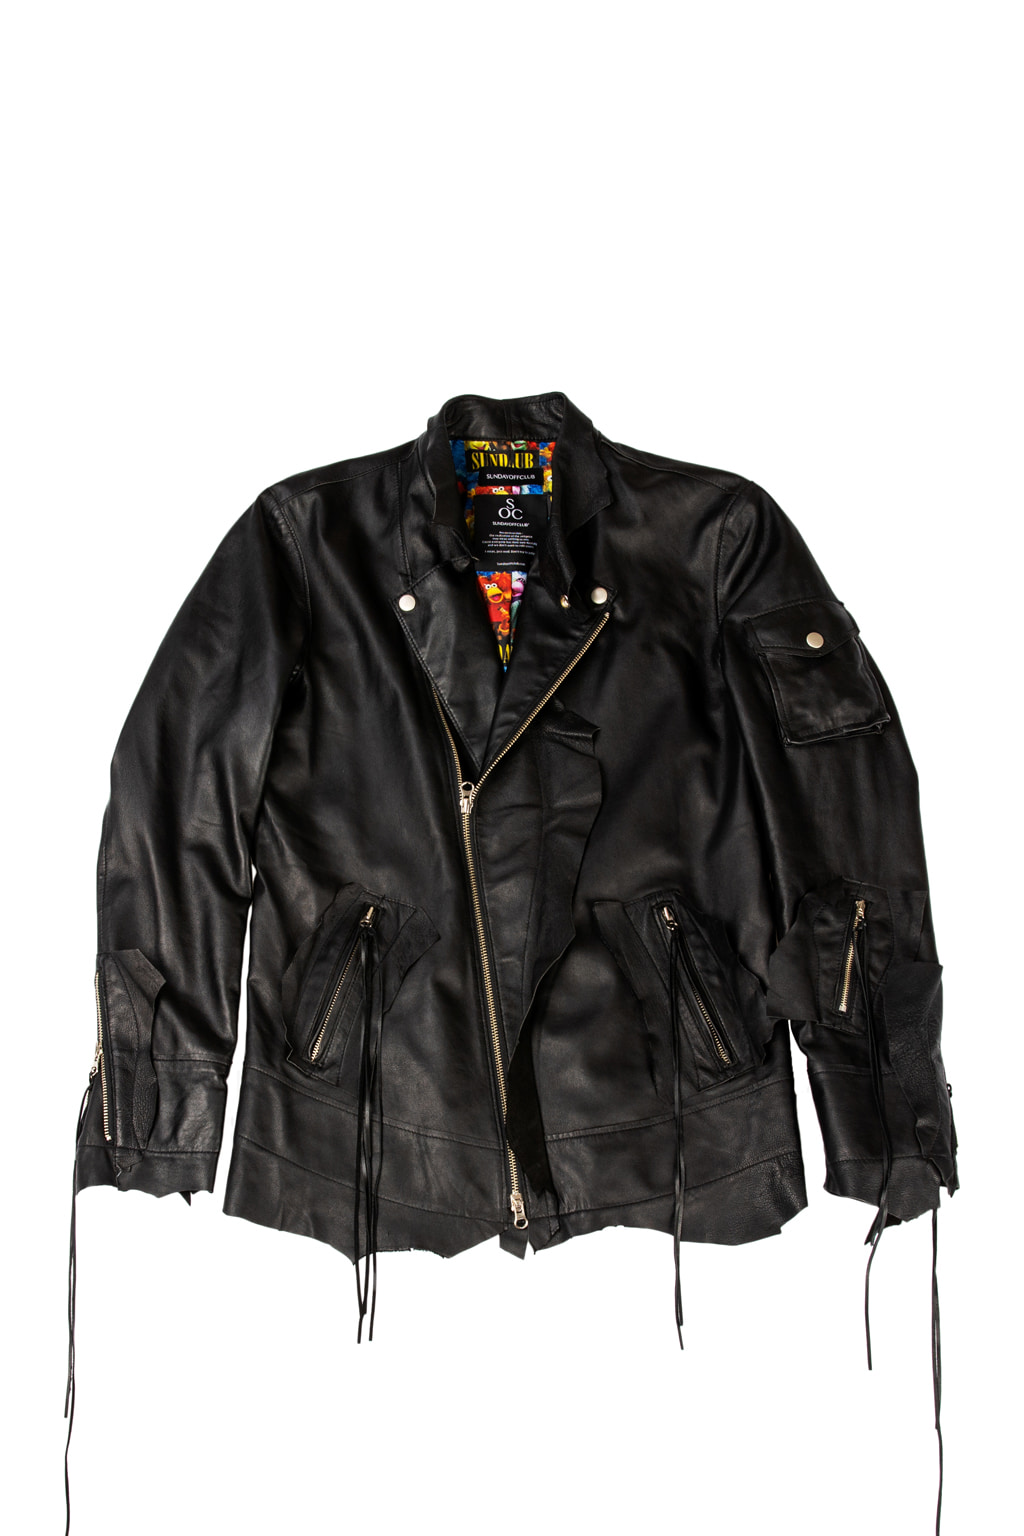 crude lane leather jacket